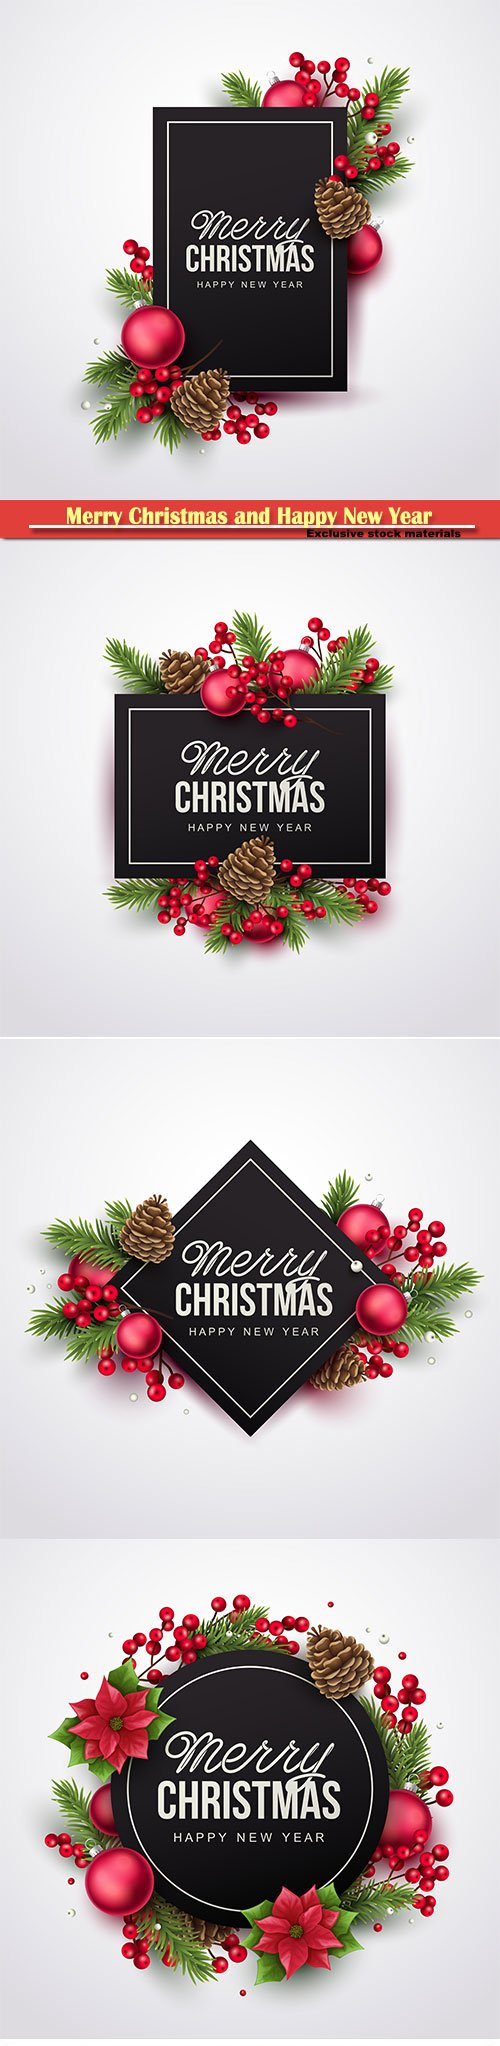 Merry Christmas and Happy New Year greeting vector illustration